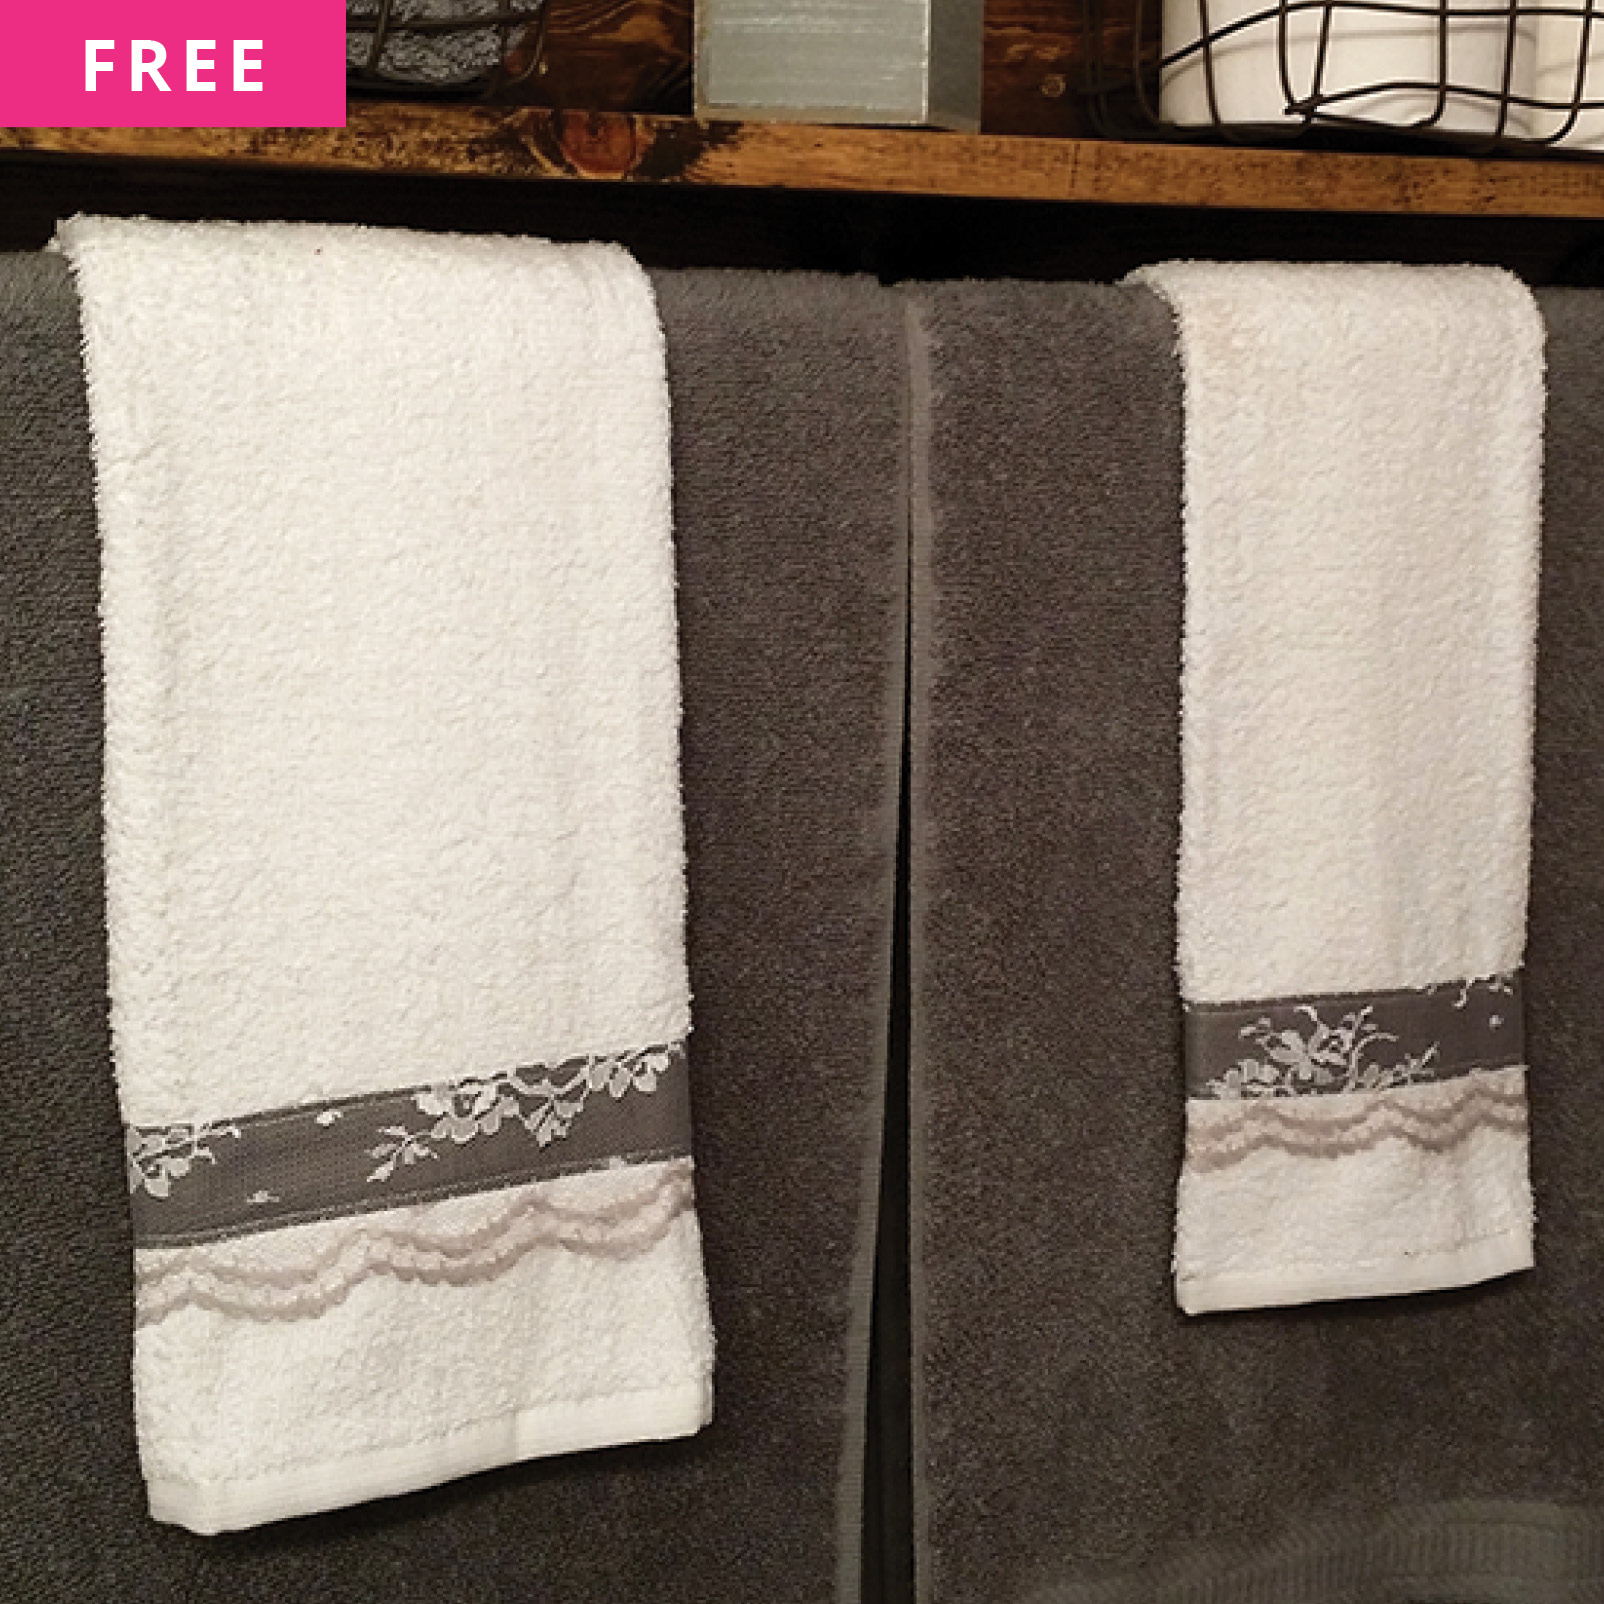 Free Sewing Pattern - Embellished Towels